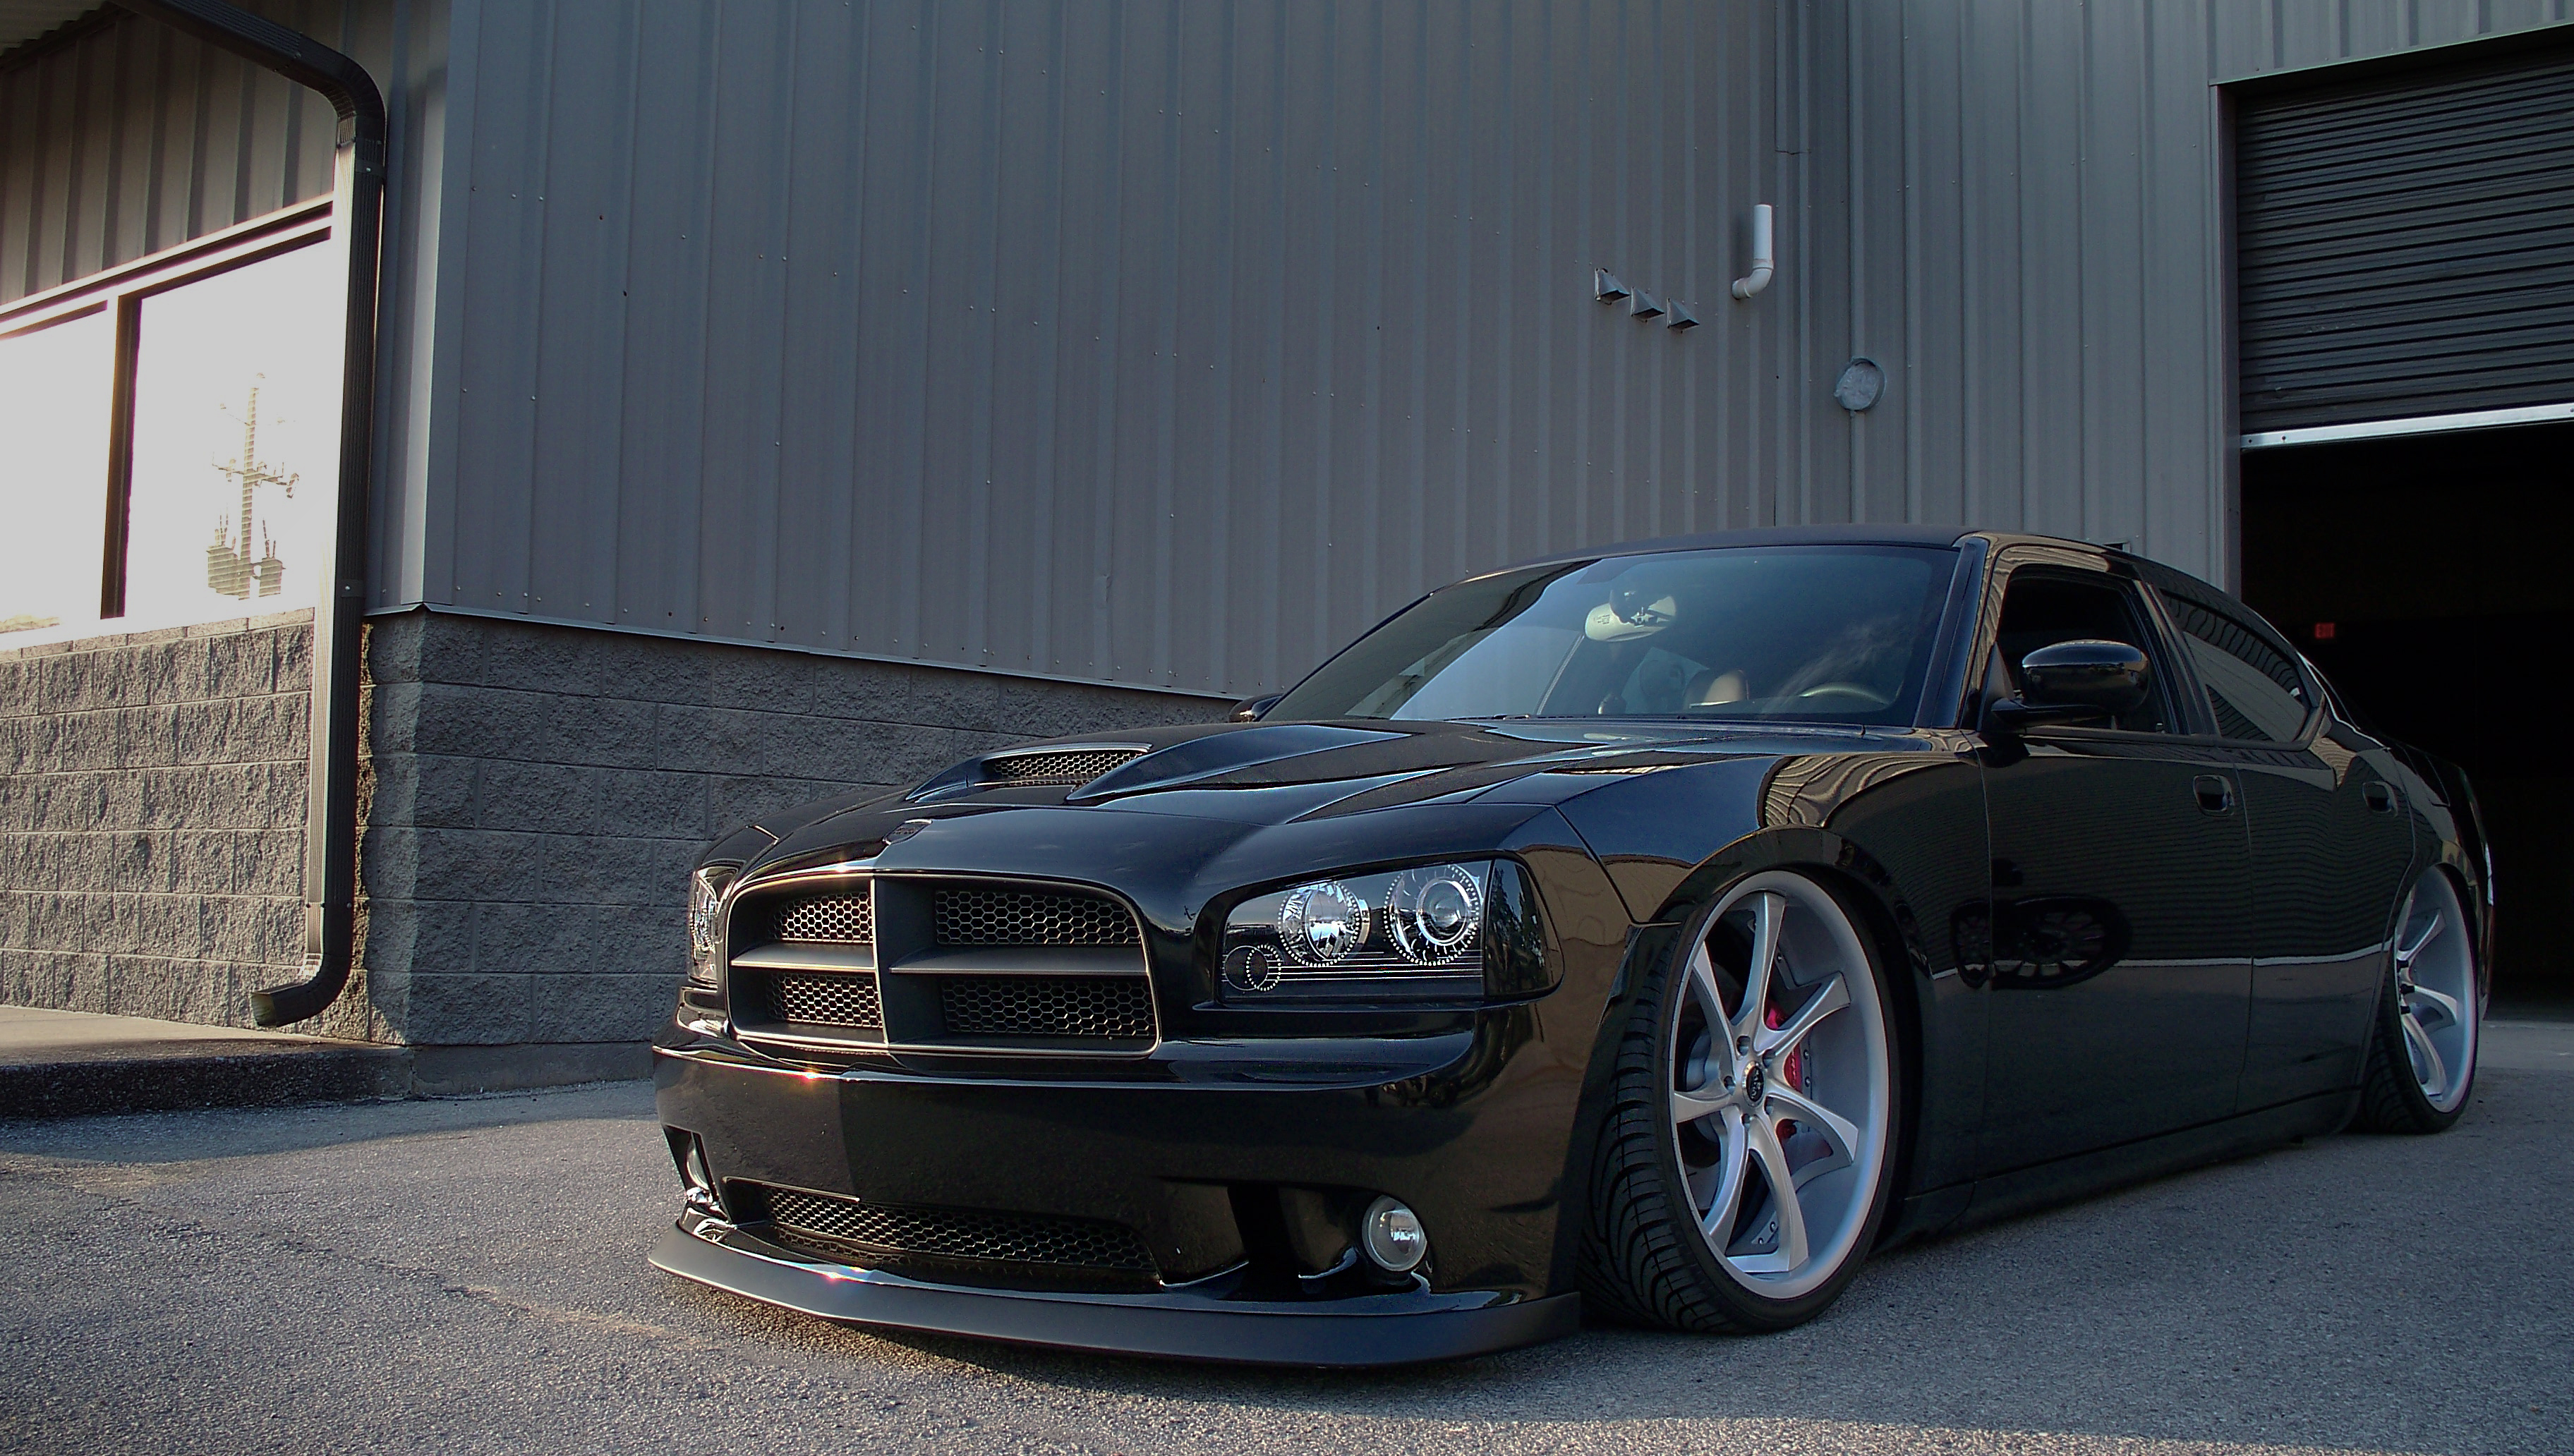 2006 Dodge Charger SRT8 426. Bagged with AccuAir eLevel and sitting ...